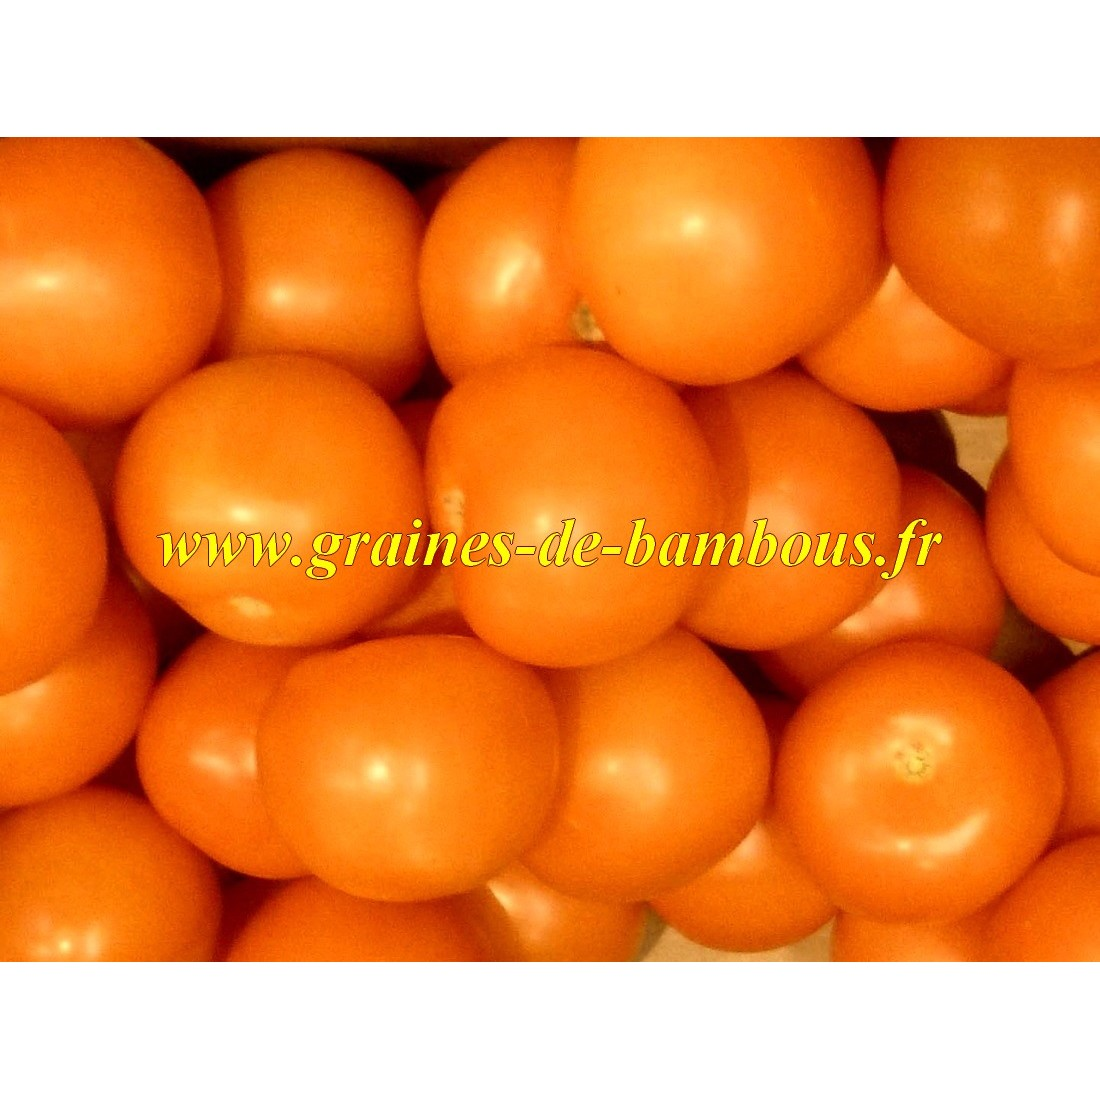 Orange queen graines de tomate